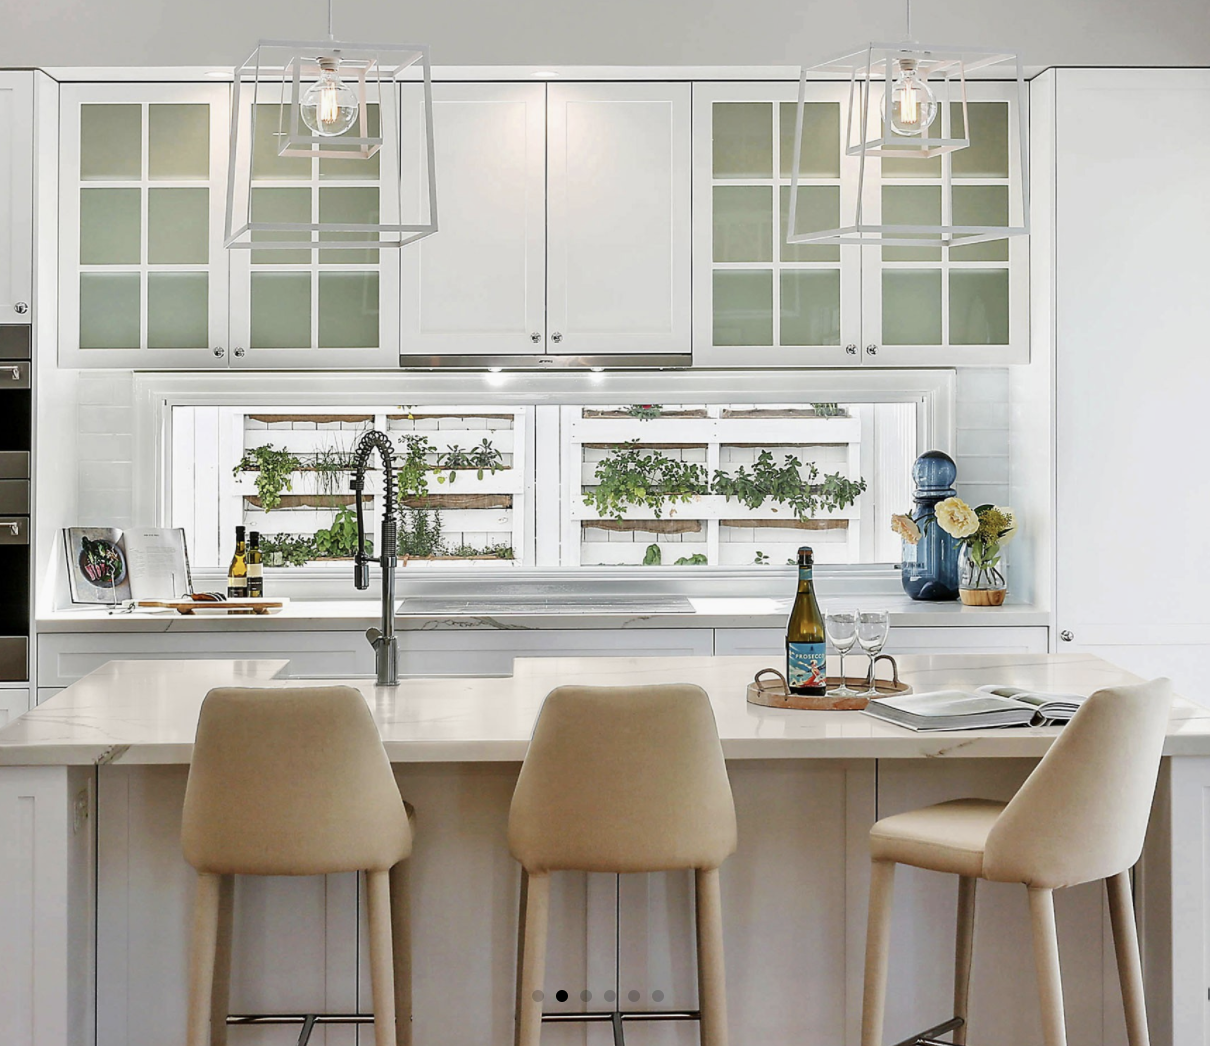 Pendant lights will not over power a small space.